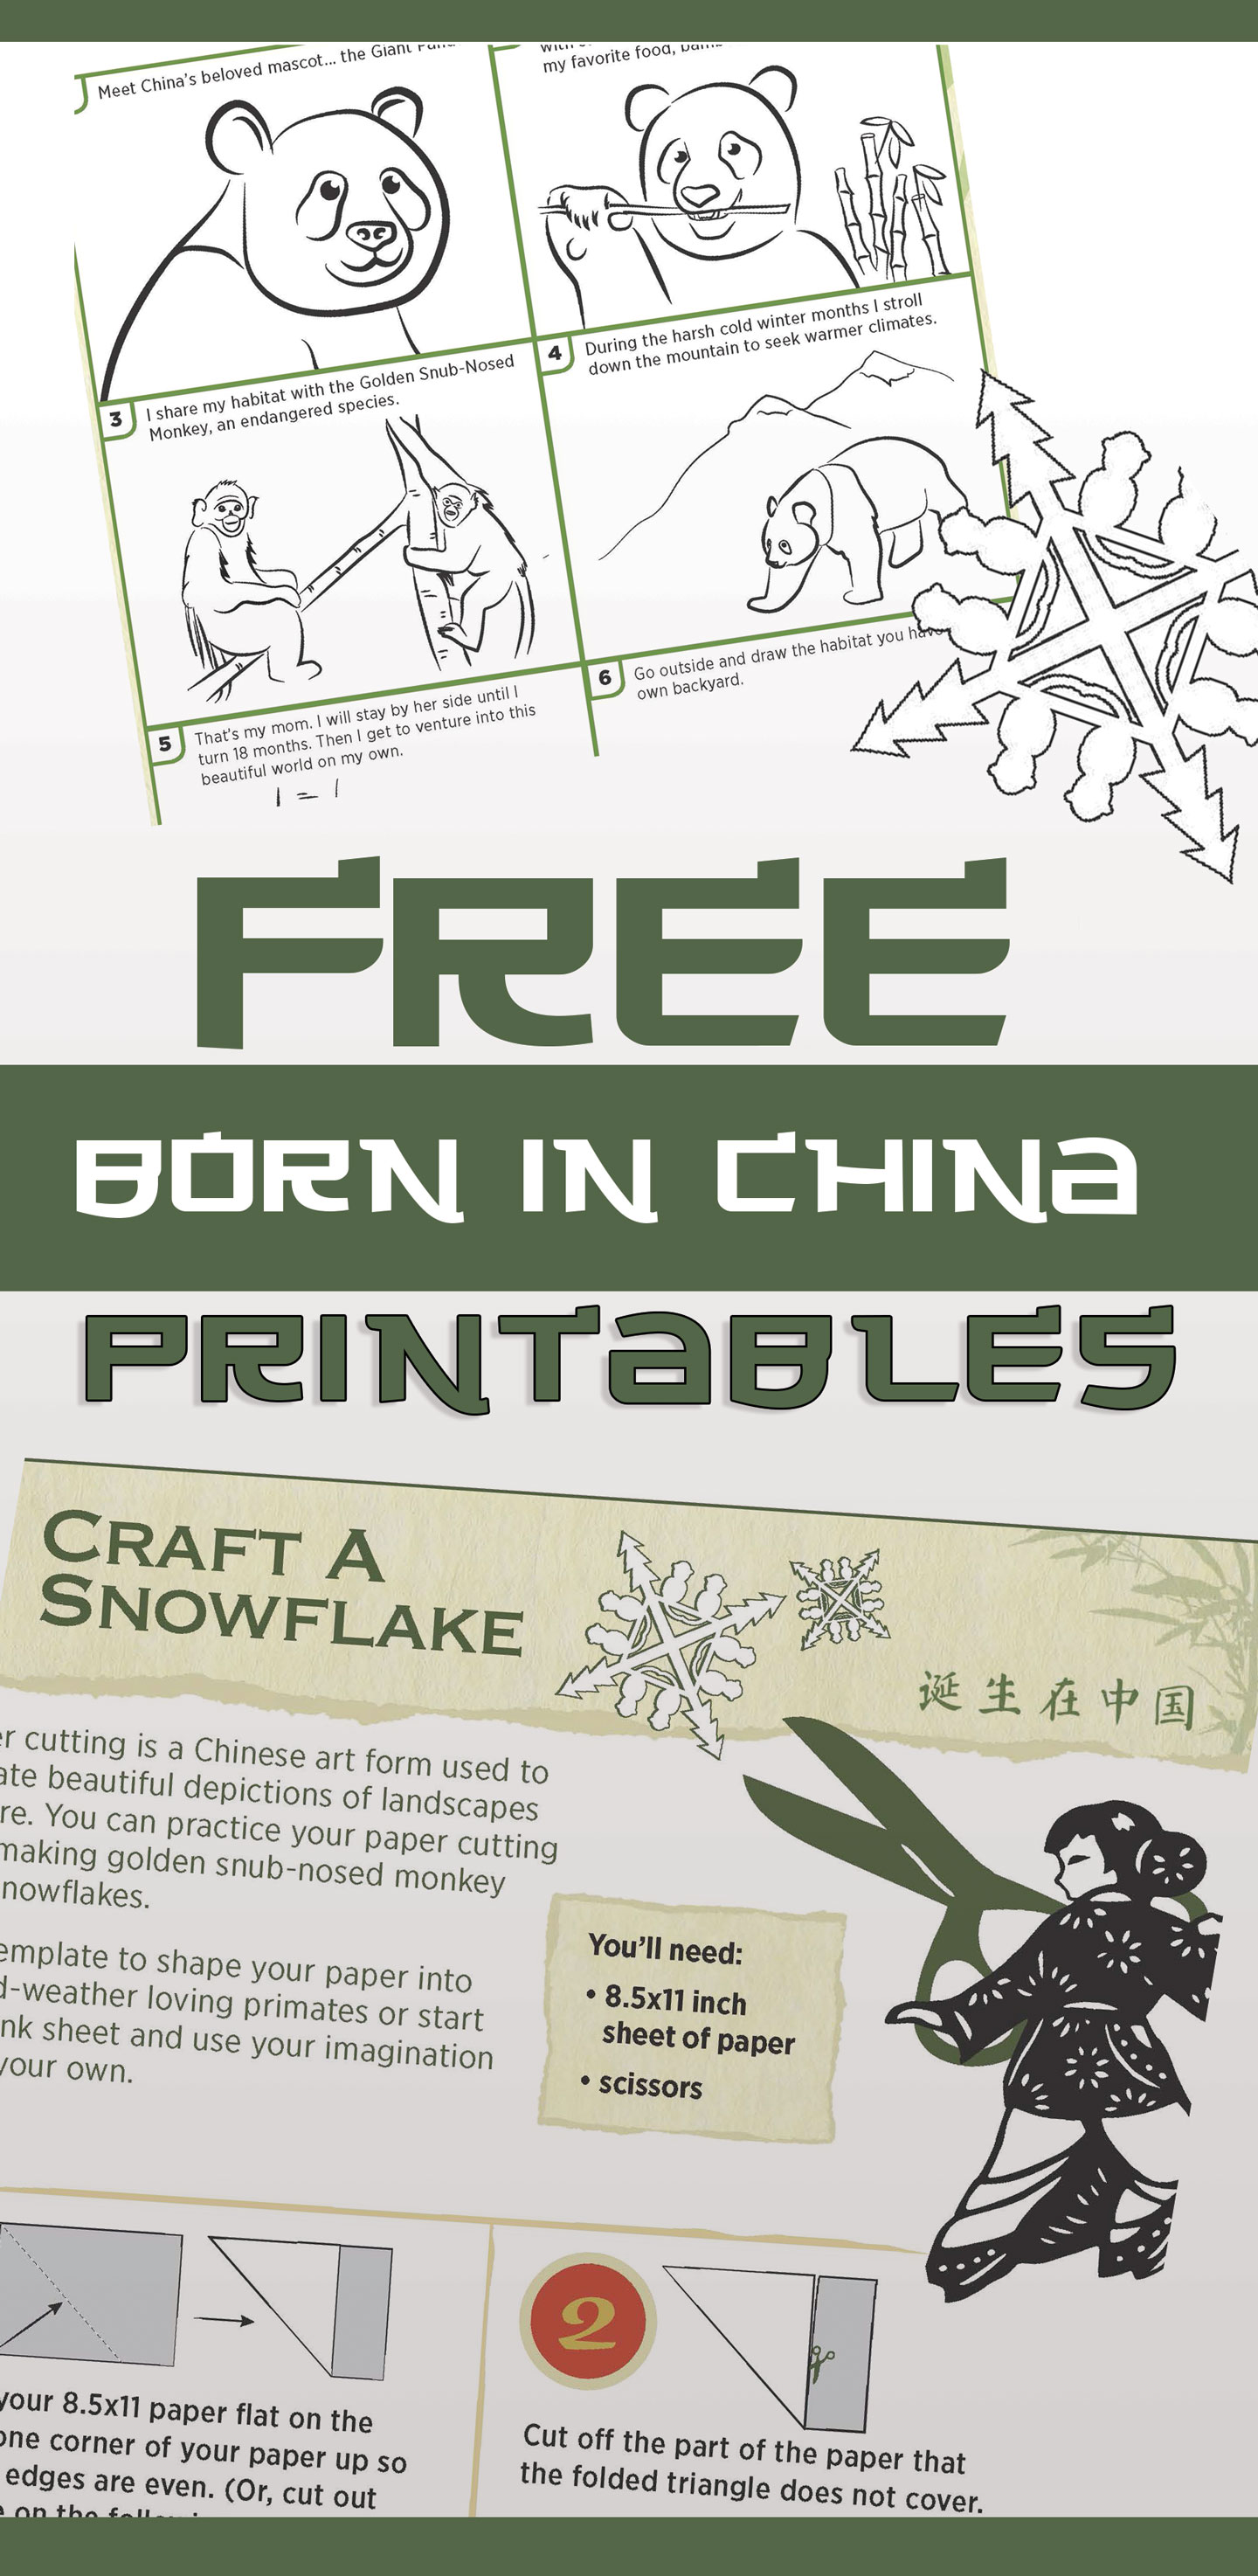 Born in China printable sheets